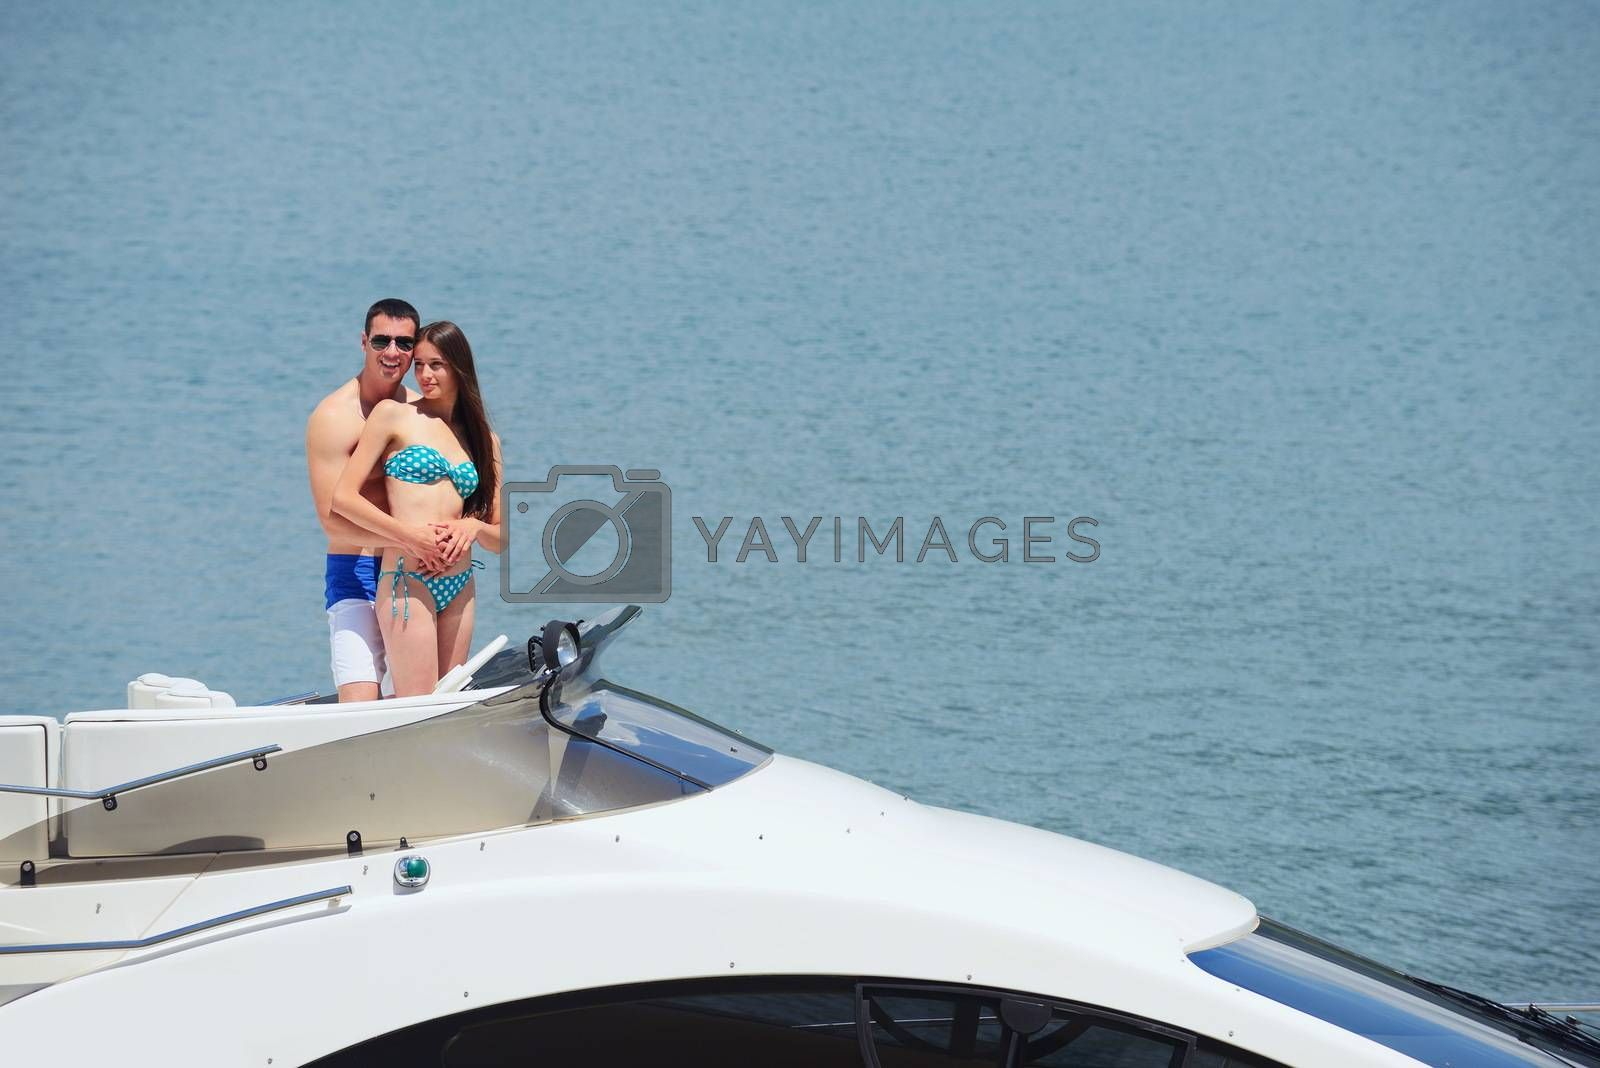 Royalty free image of young couple on yacht by .shock